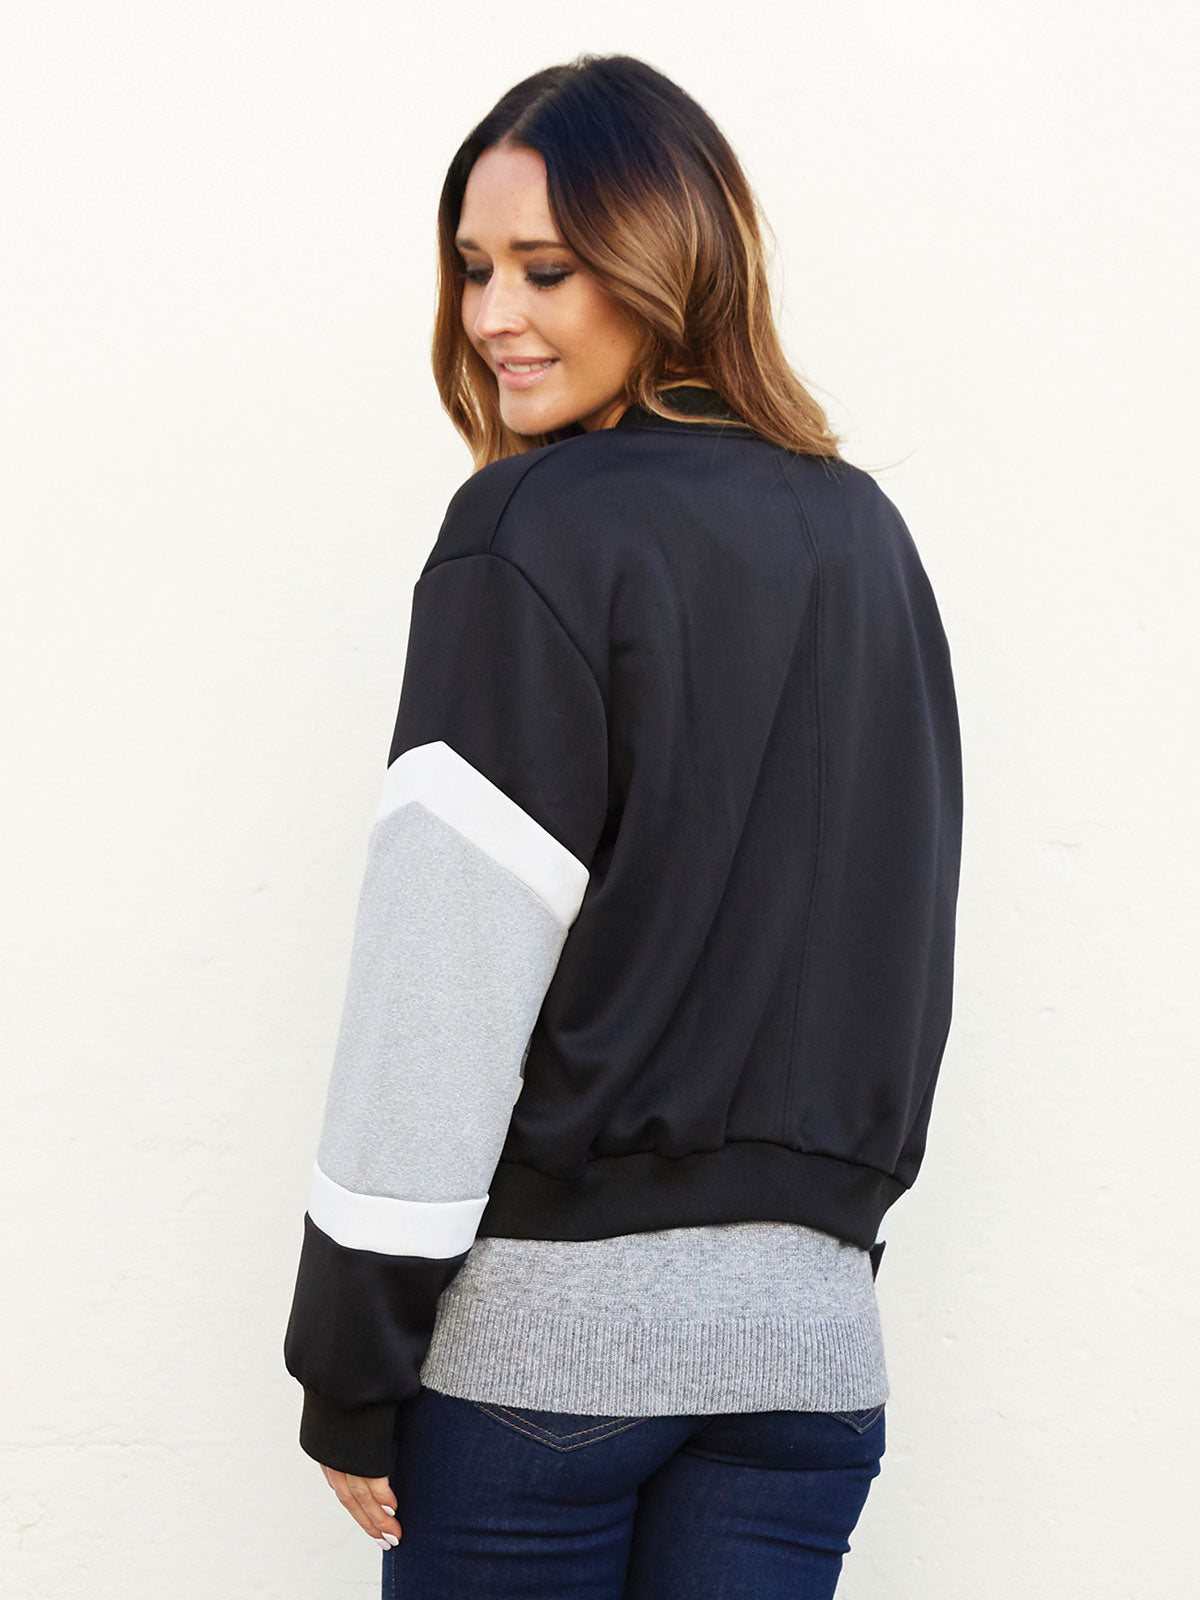 GO YOUR OWN WAY ACTIVEWEAR JACKET